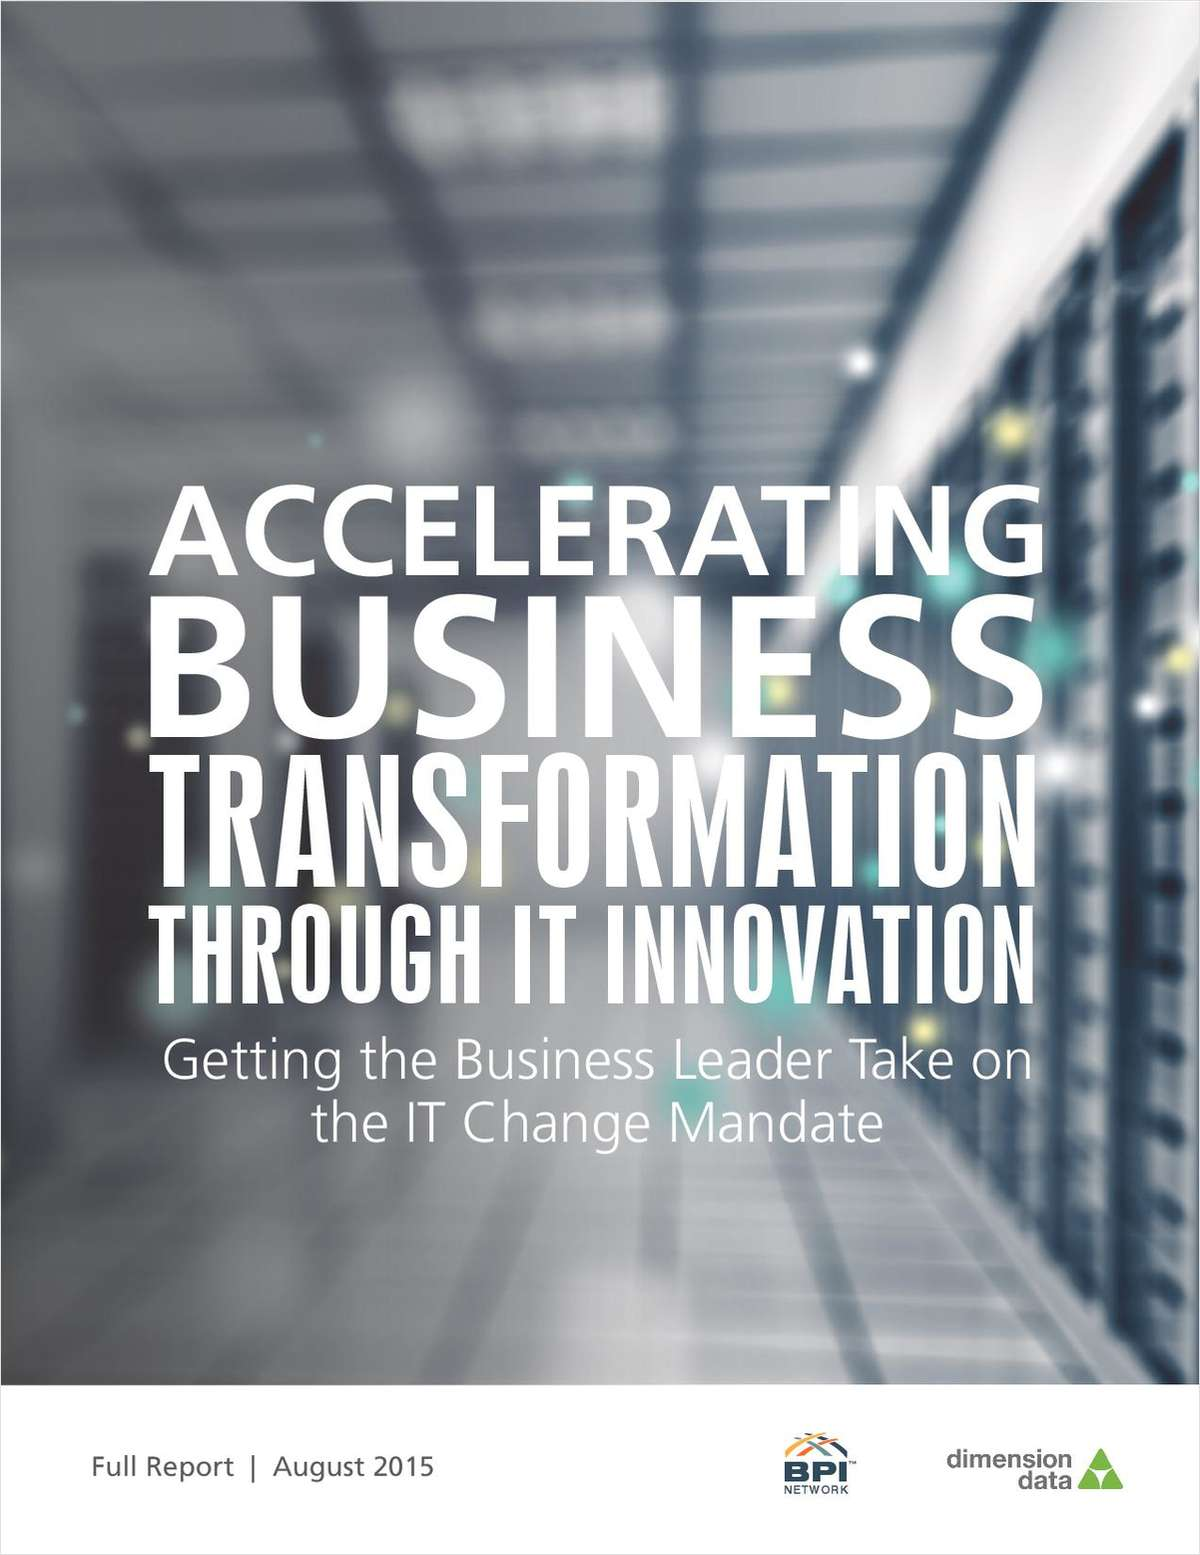 Accelerating Business Transformation Through IT Innovation: Getting the Business Leader Take on the IT Change Mandate (Valued at $199)